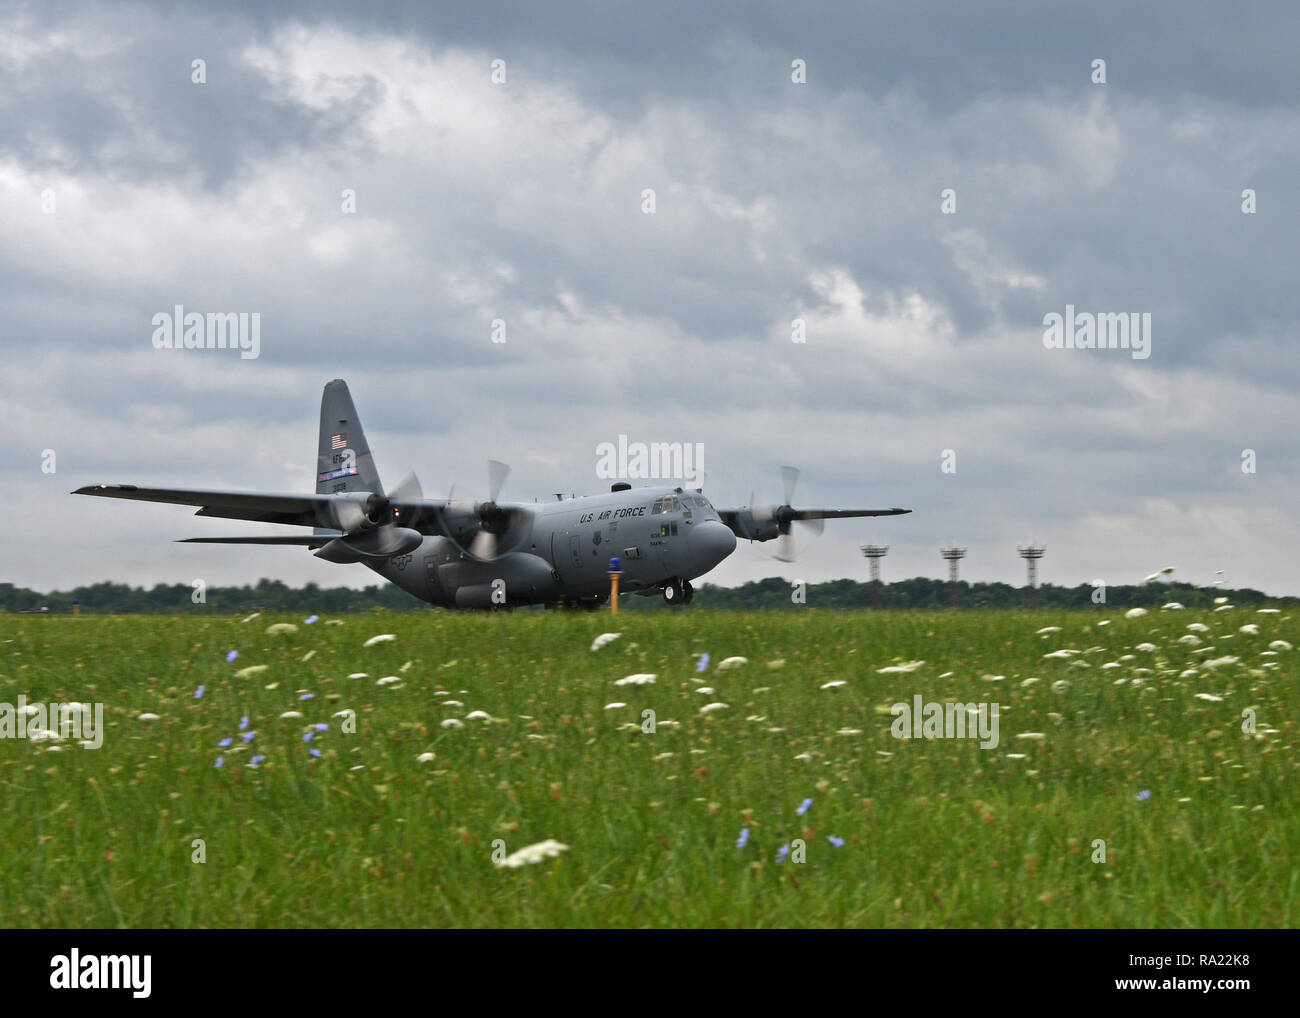 A C-130 Hercules aircraft from the 94th Airlift Wing performs a touch and go at Youngstown Air Reserve Station, August 8, 2018. During touch and goes, the aircraft descends to the runway, lands, and then takes back off again. This is done to help simulate tactical operations. (U.S. Air Force photo by Staff Sgt. Miles Wilson) - Stock Image